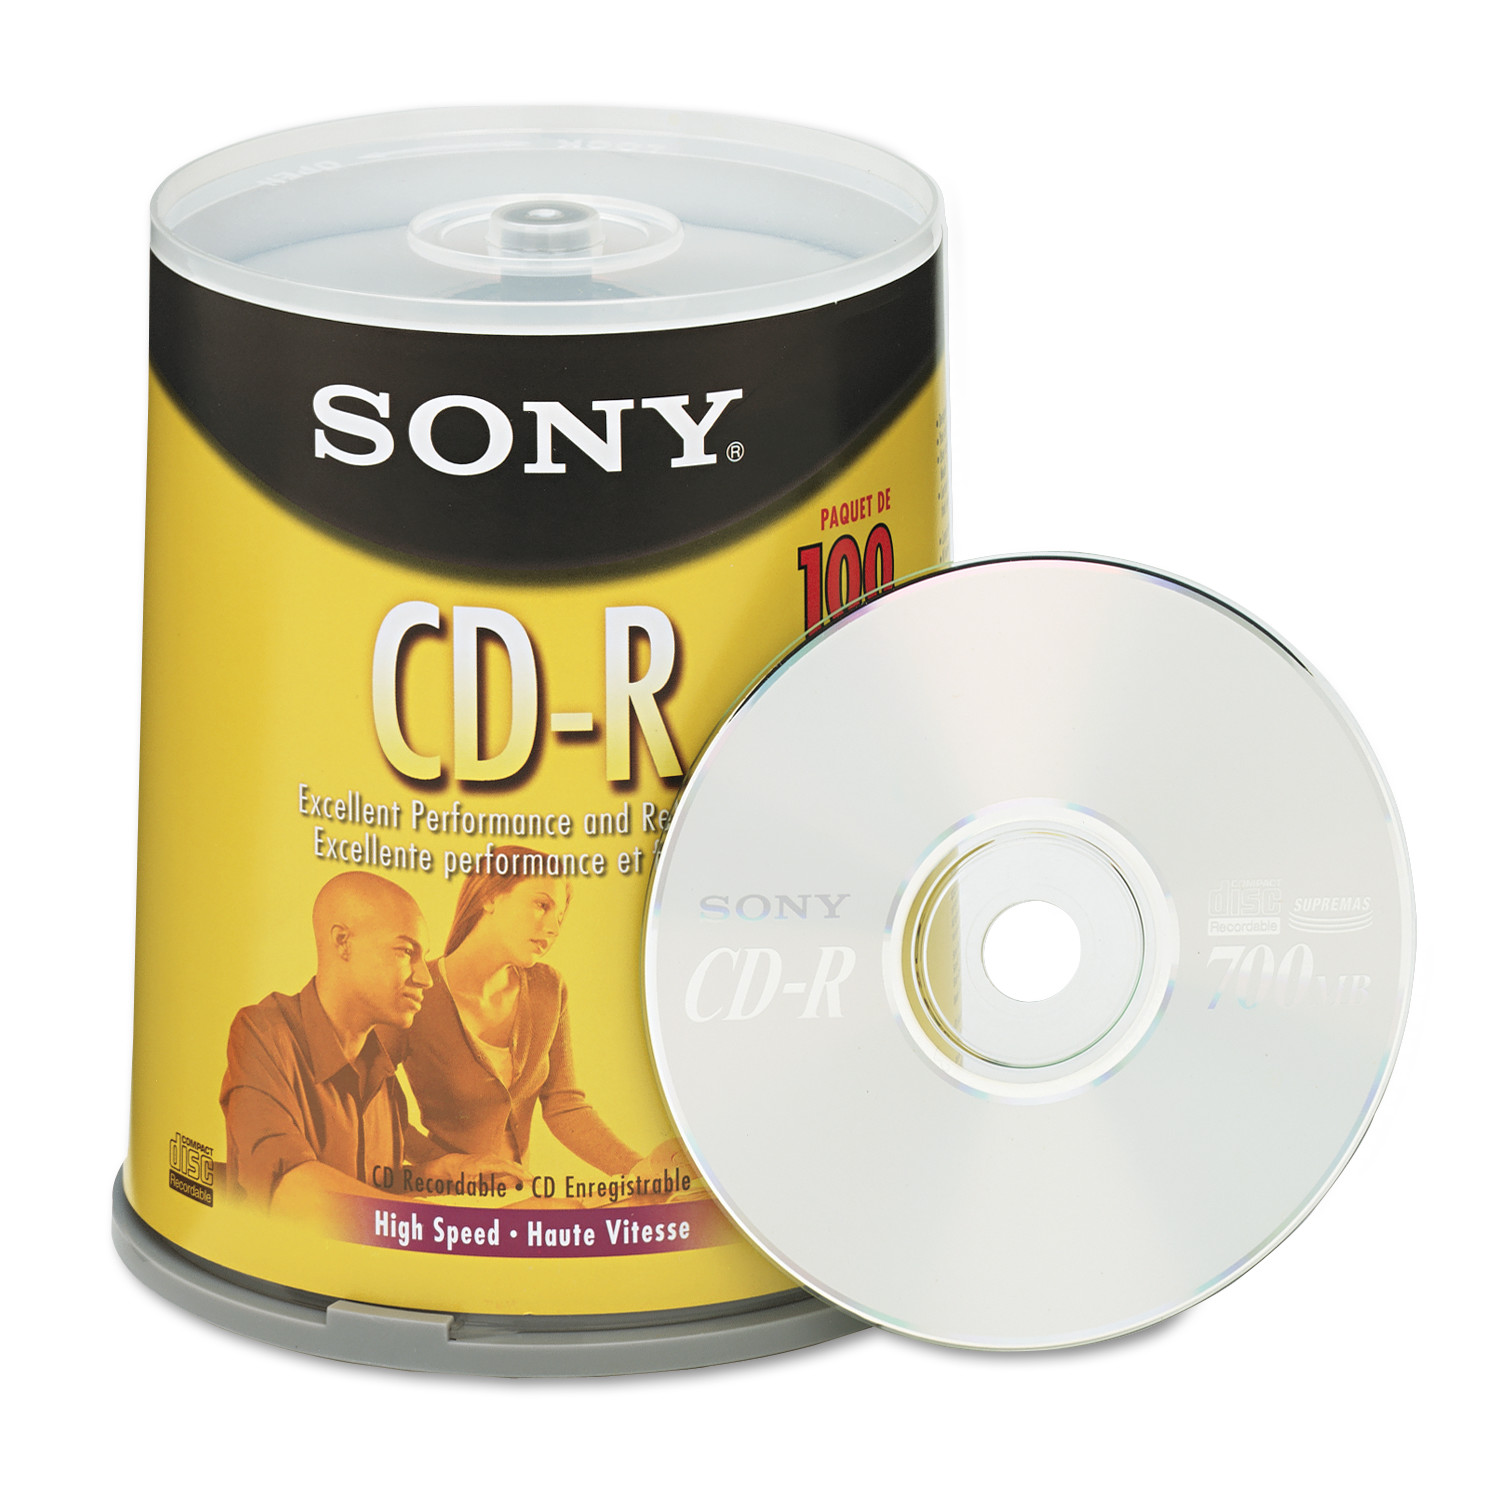 Sony CD-R Discs, 700MB/80min, 48x, Spindle, Silver, 100/Pack